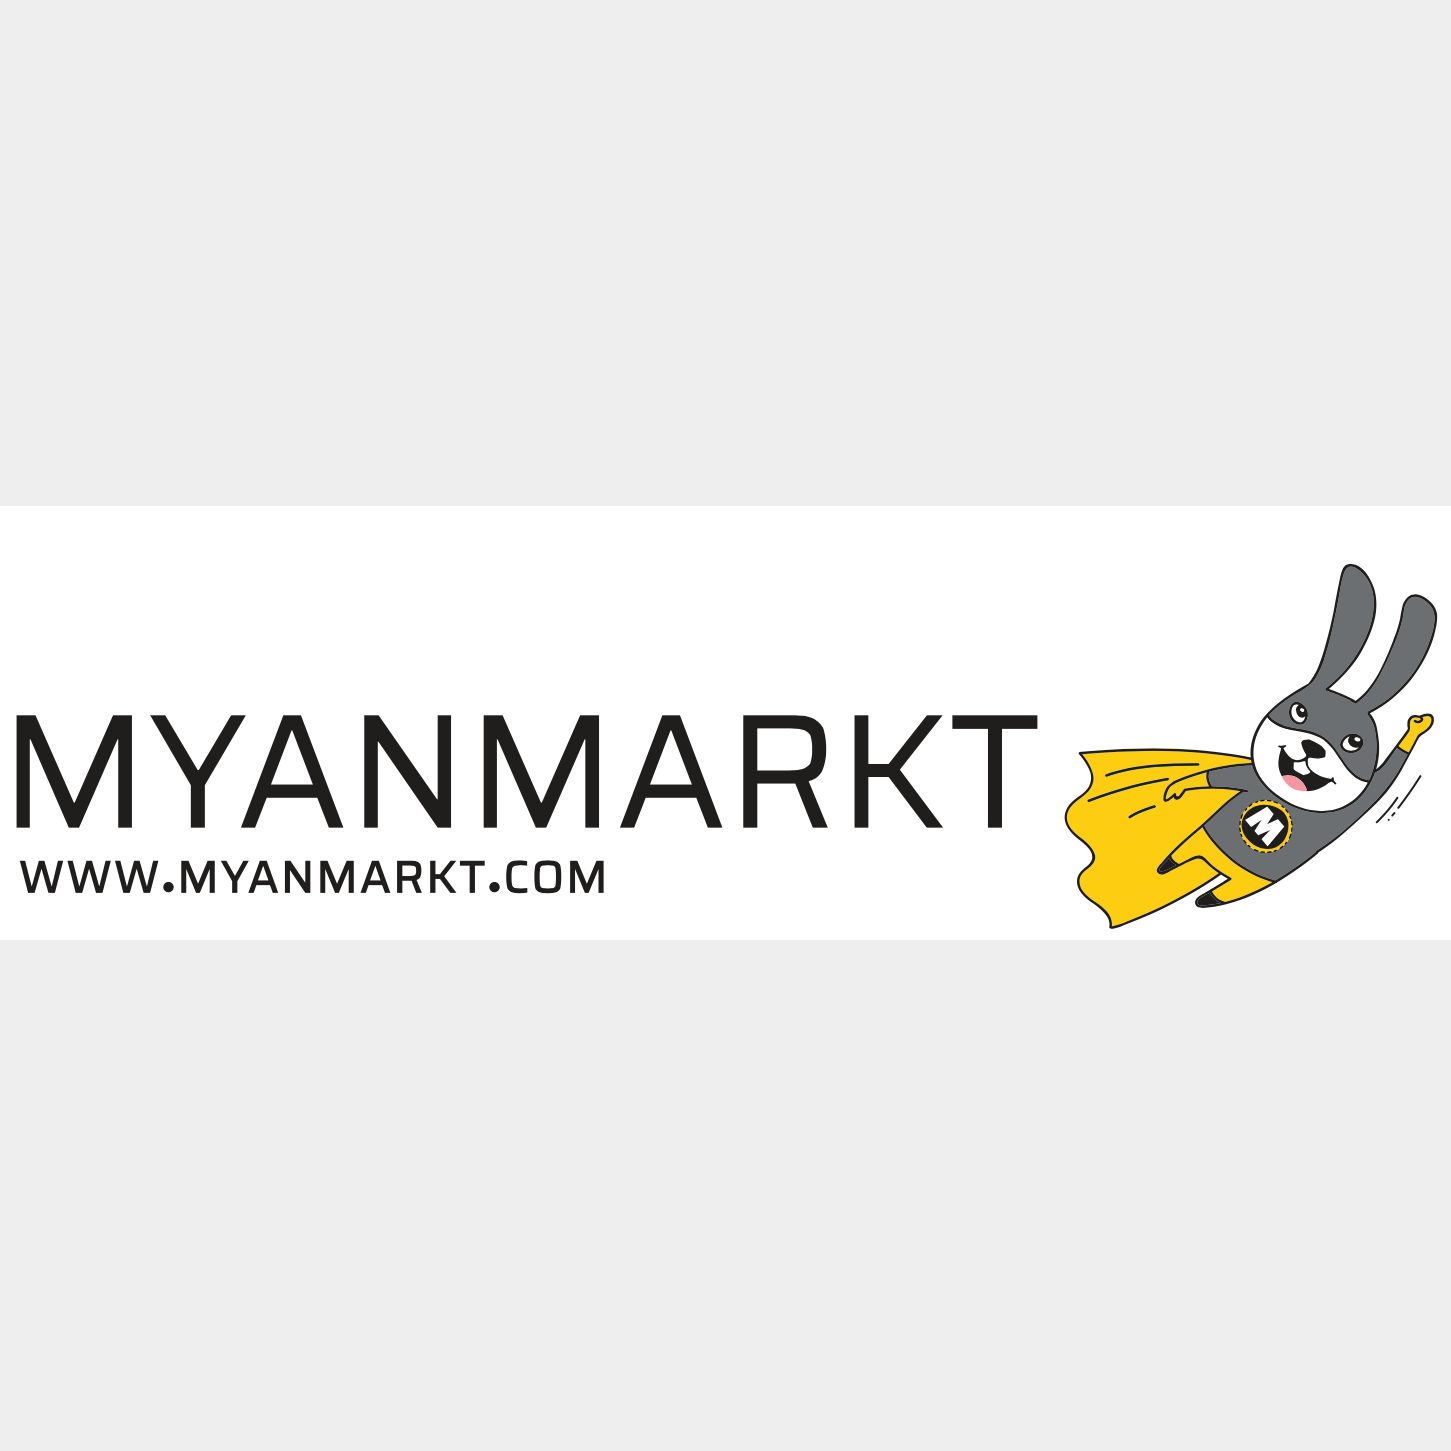 3-month Paid Internship Opportunity Image, Call center & Customer Service  classified, Myanmar marketplace, Myanmarkt